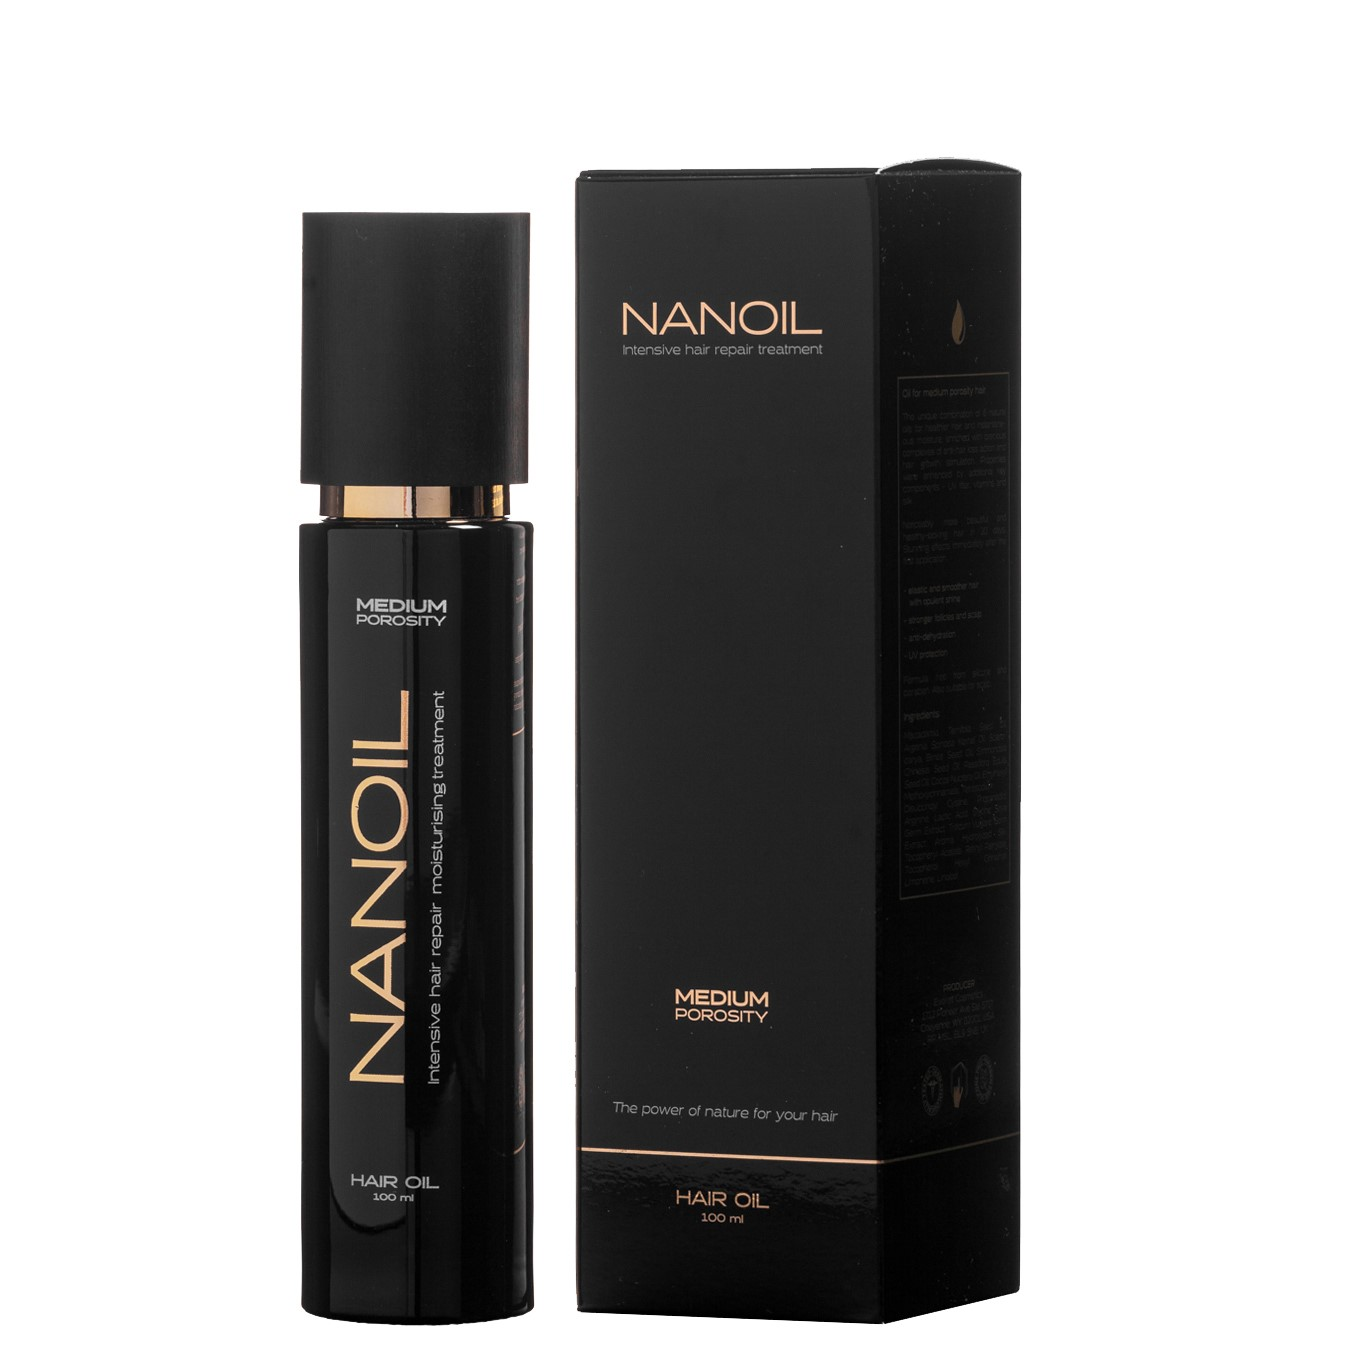 Nanoil Intensive Hair Repair Treatment Hair Oil